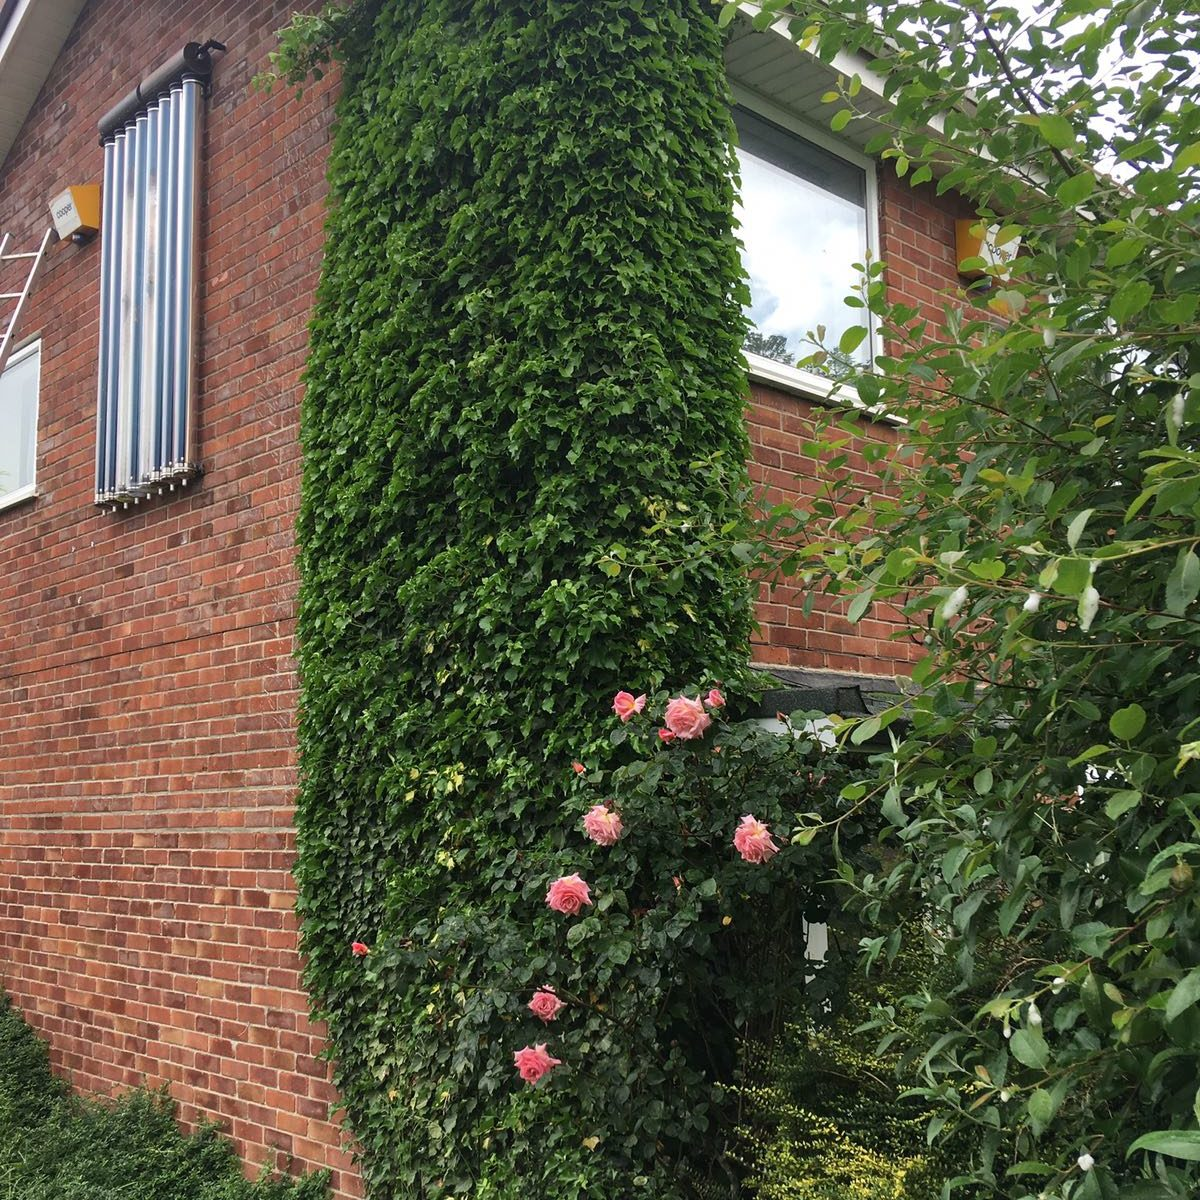 Ivy removal from brickwork and gutters of house